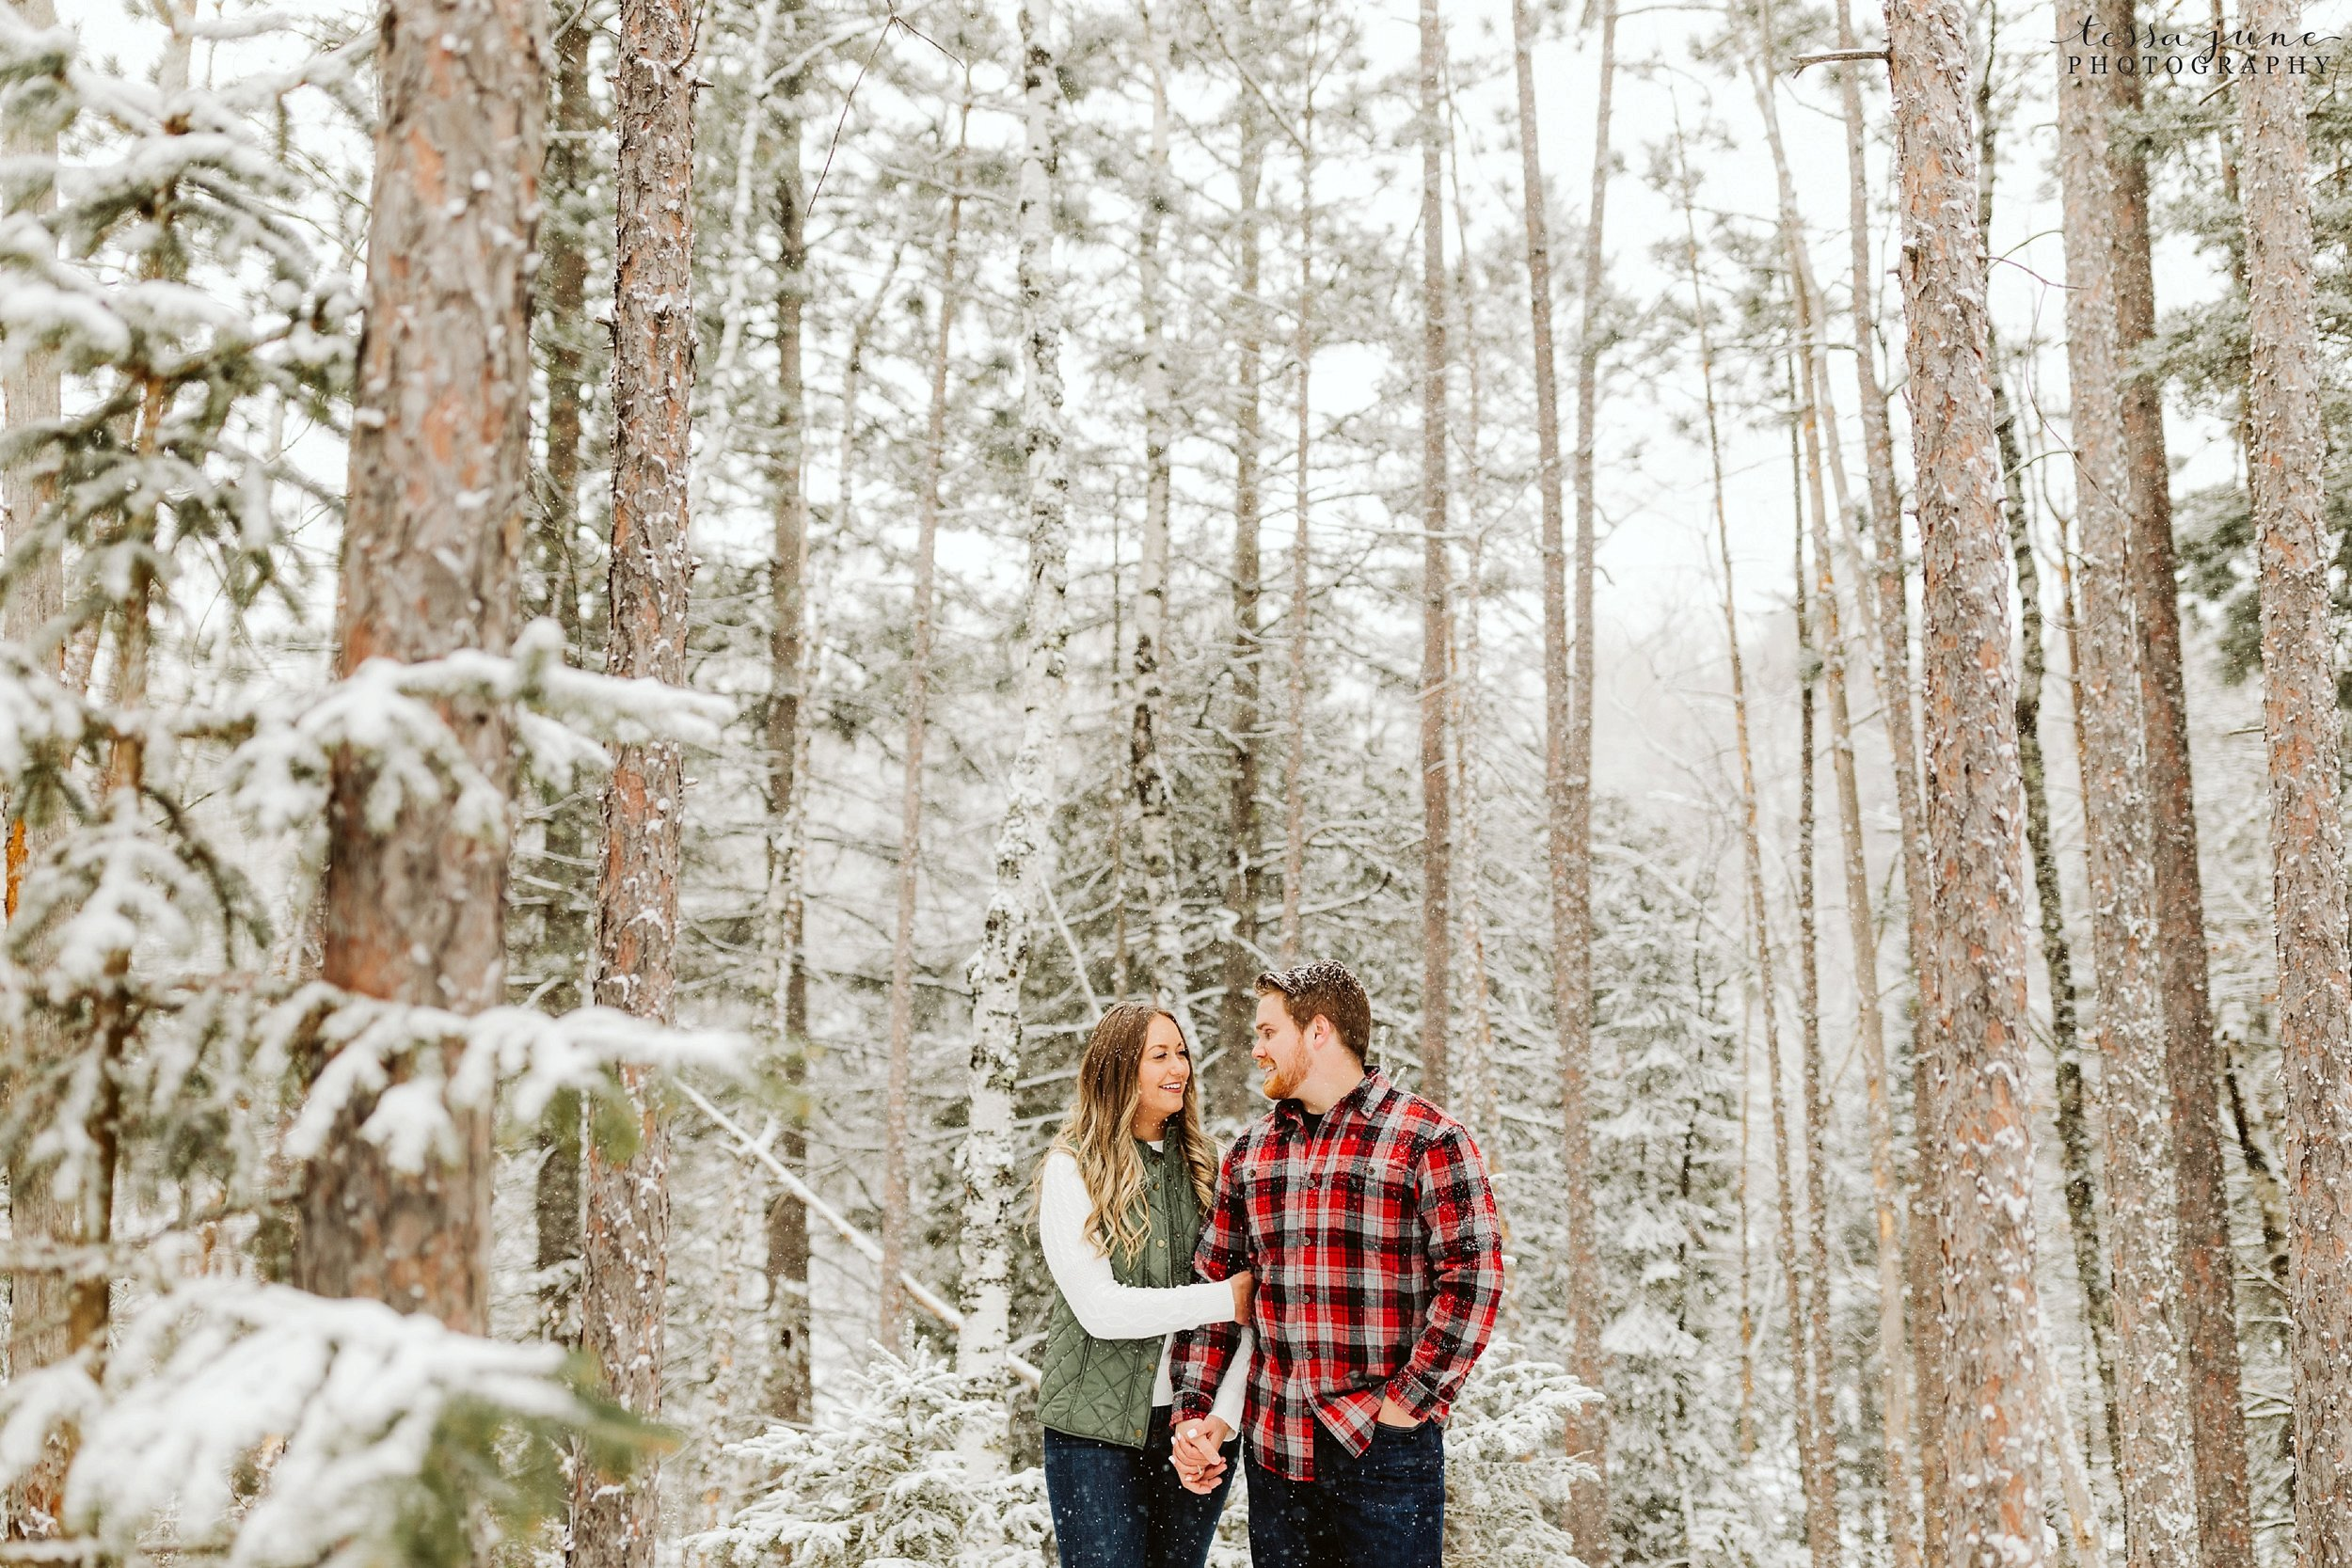 duluth-winter-engagement-forest-photos-during-snow-storm-13.jpg